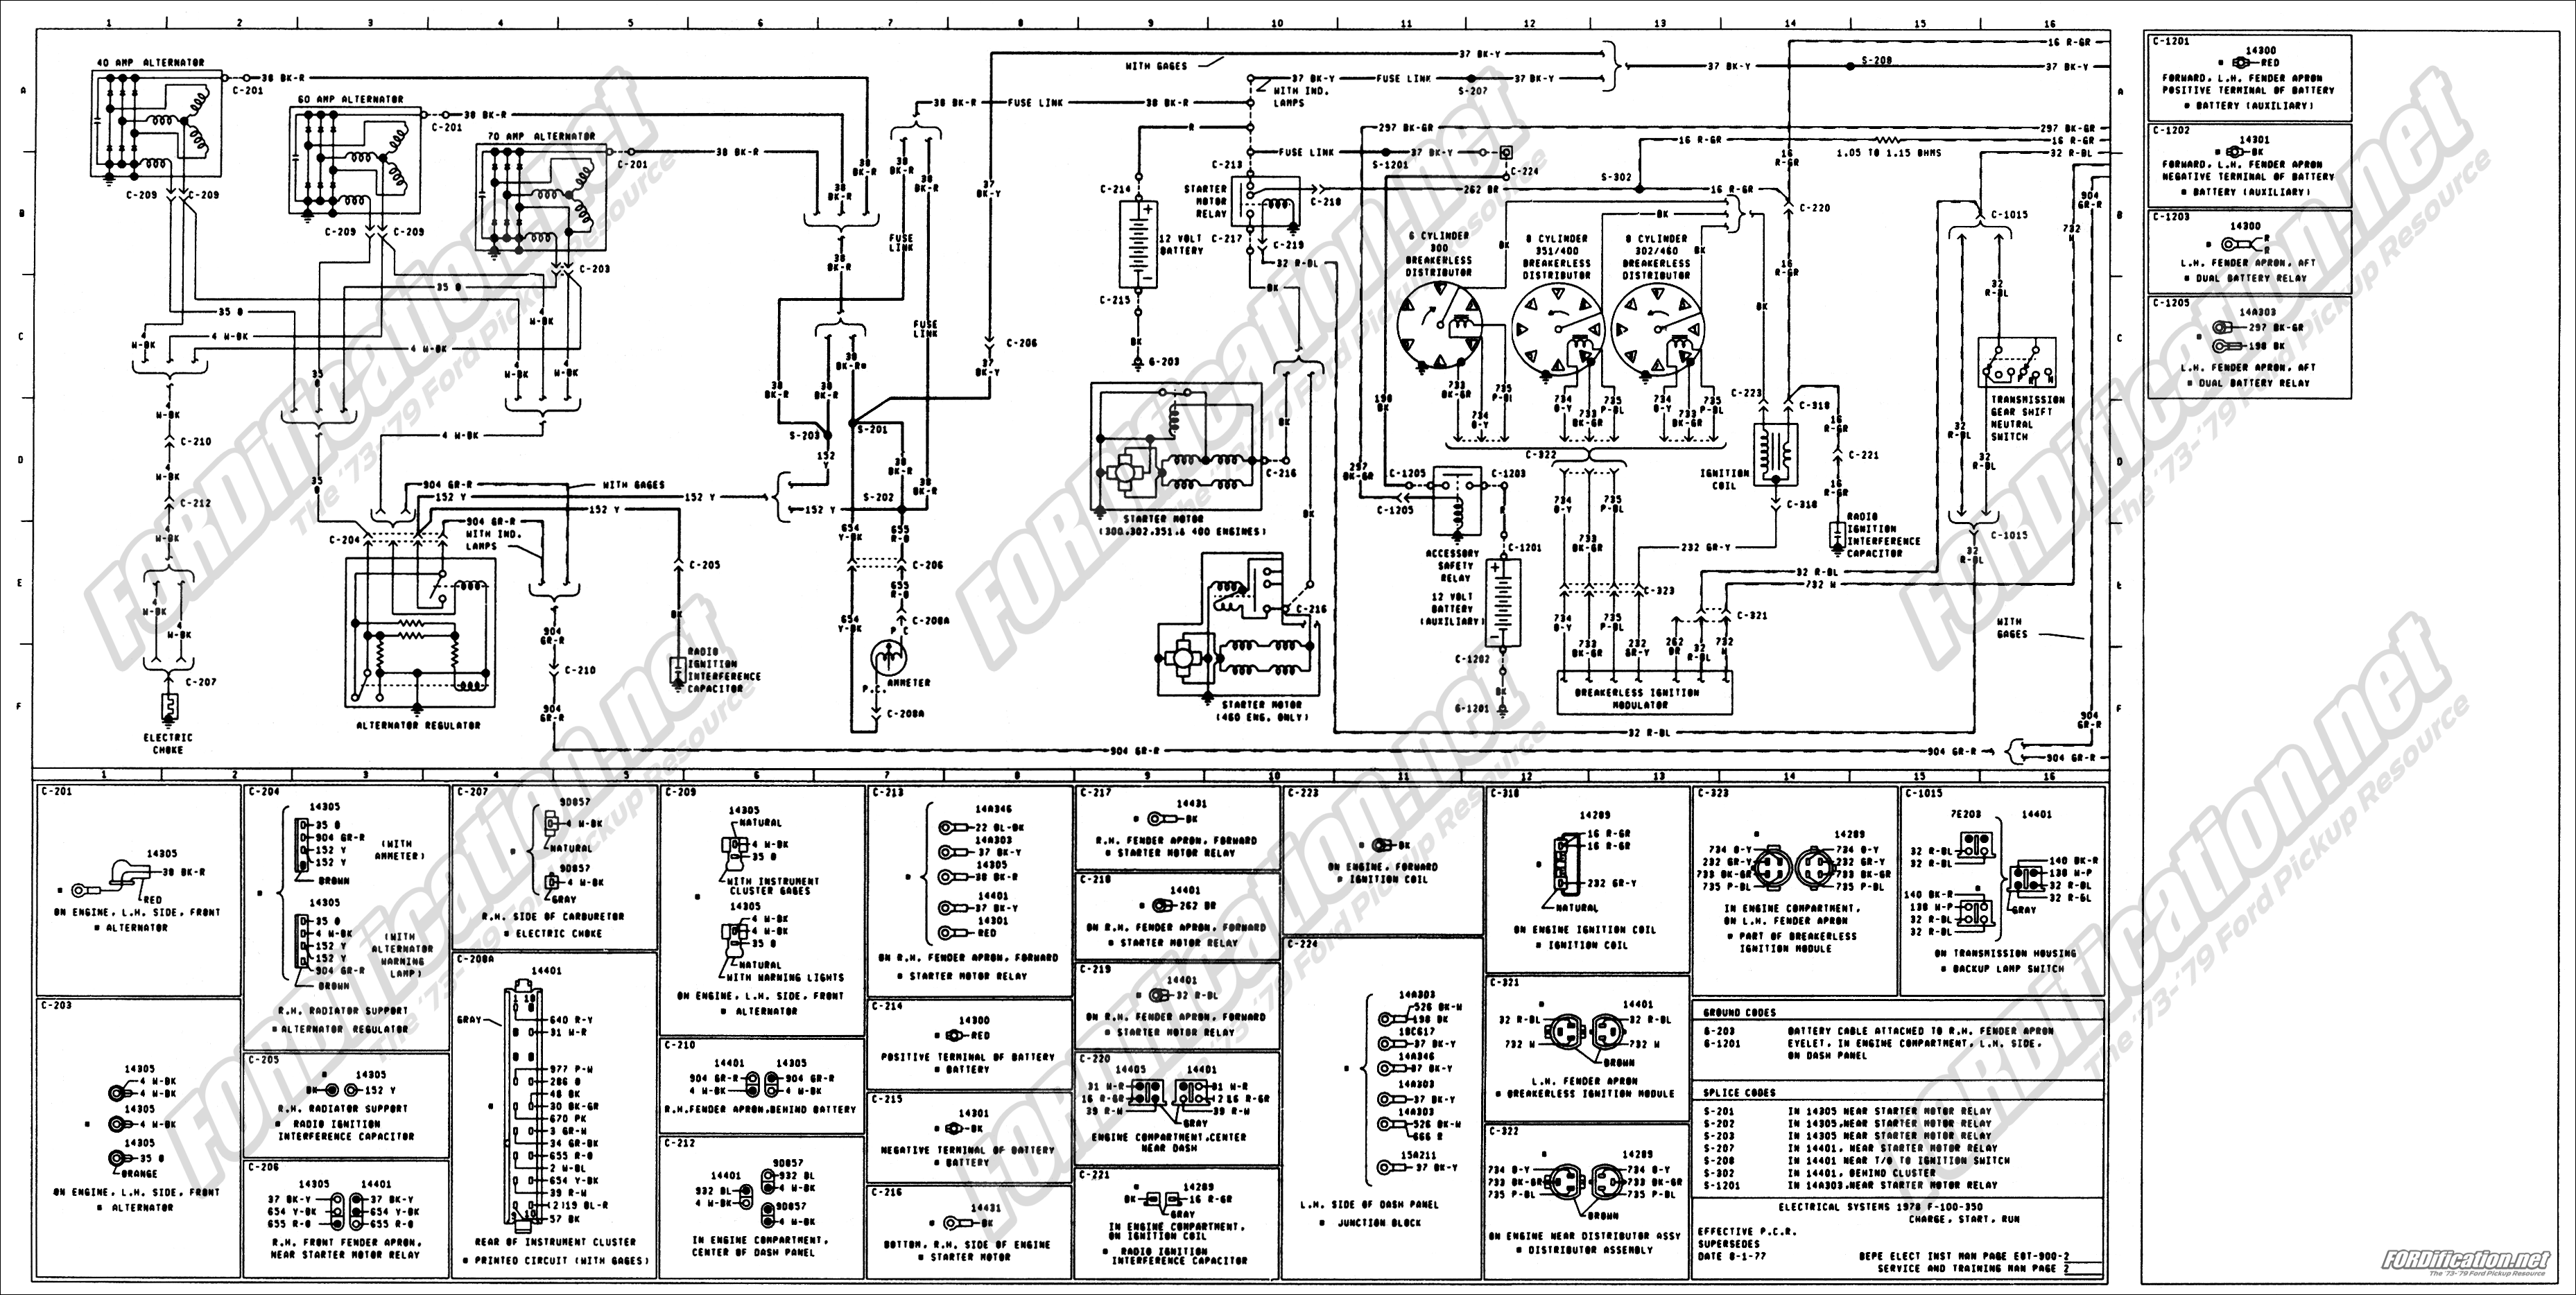 wiring diagram for 1969 ford f100  wiring  get free image